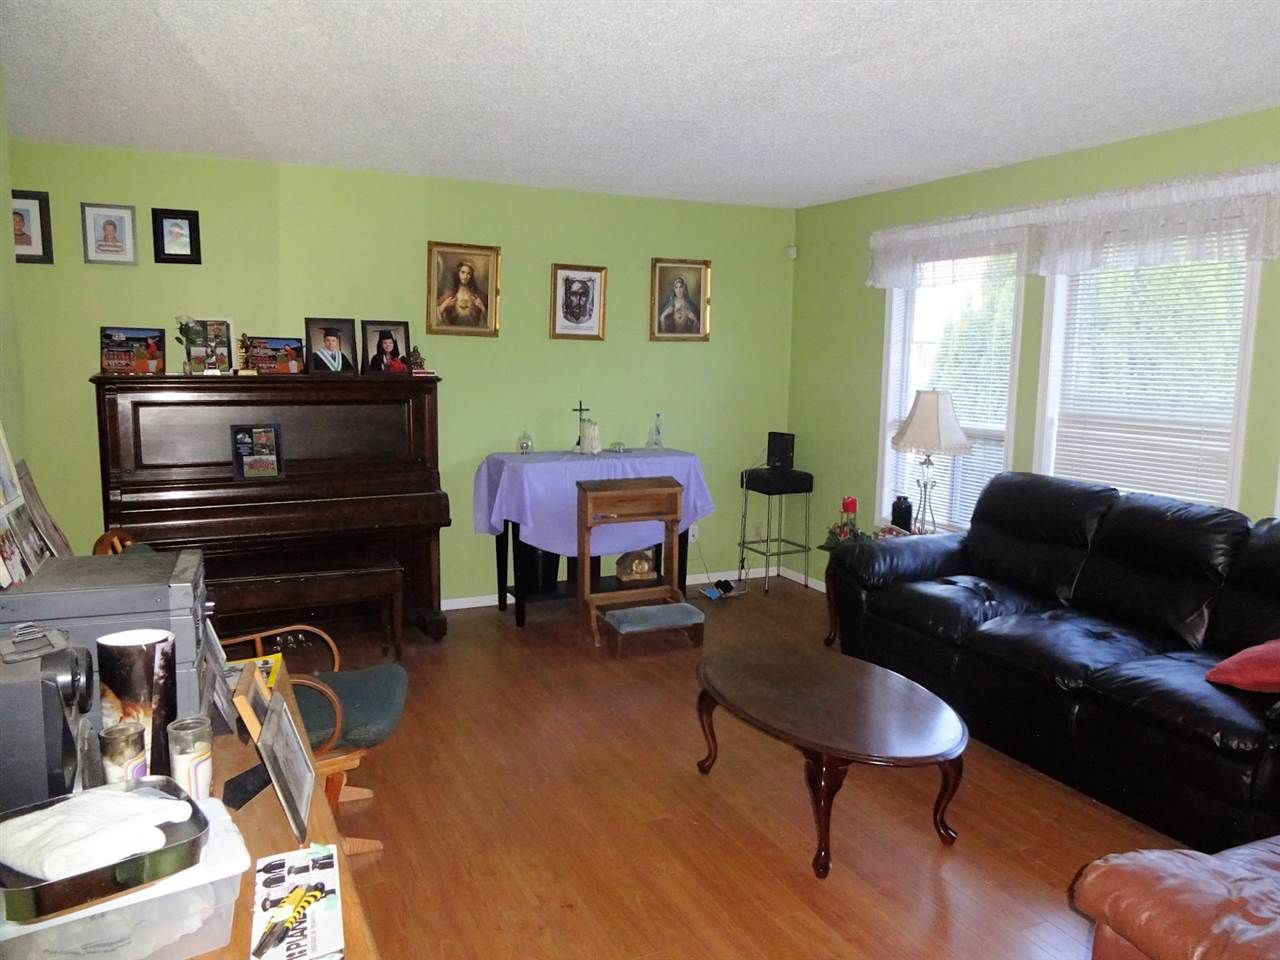 Photo 7: Photos: 6245 DUNDEE Place in Sardis: Sardis West Vedder Rd House for sale : MLS®# R2224915